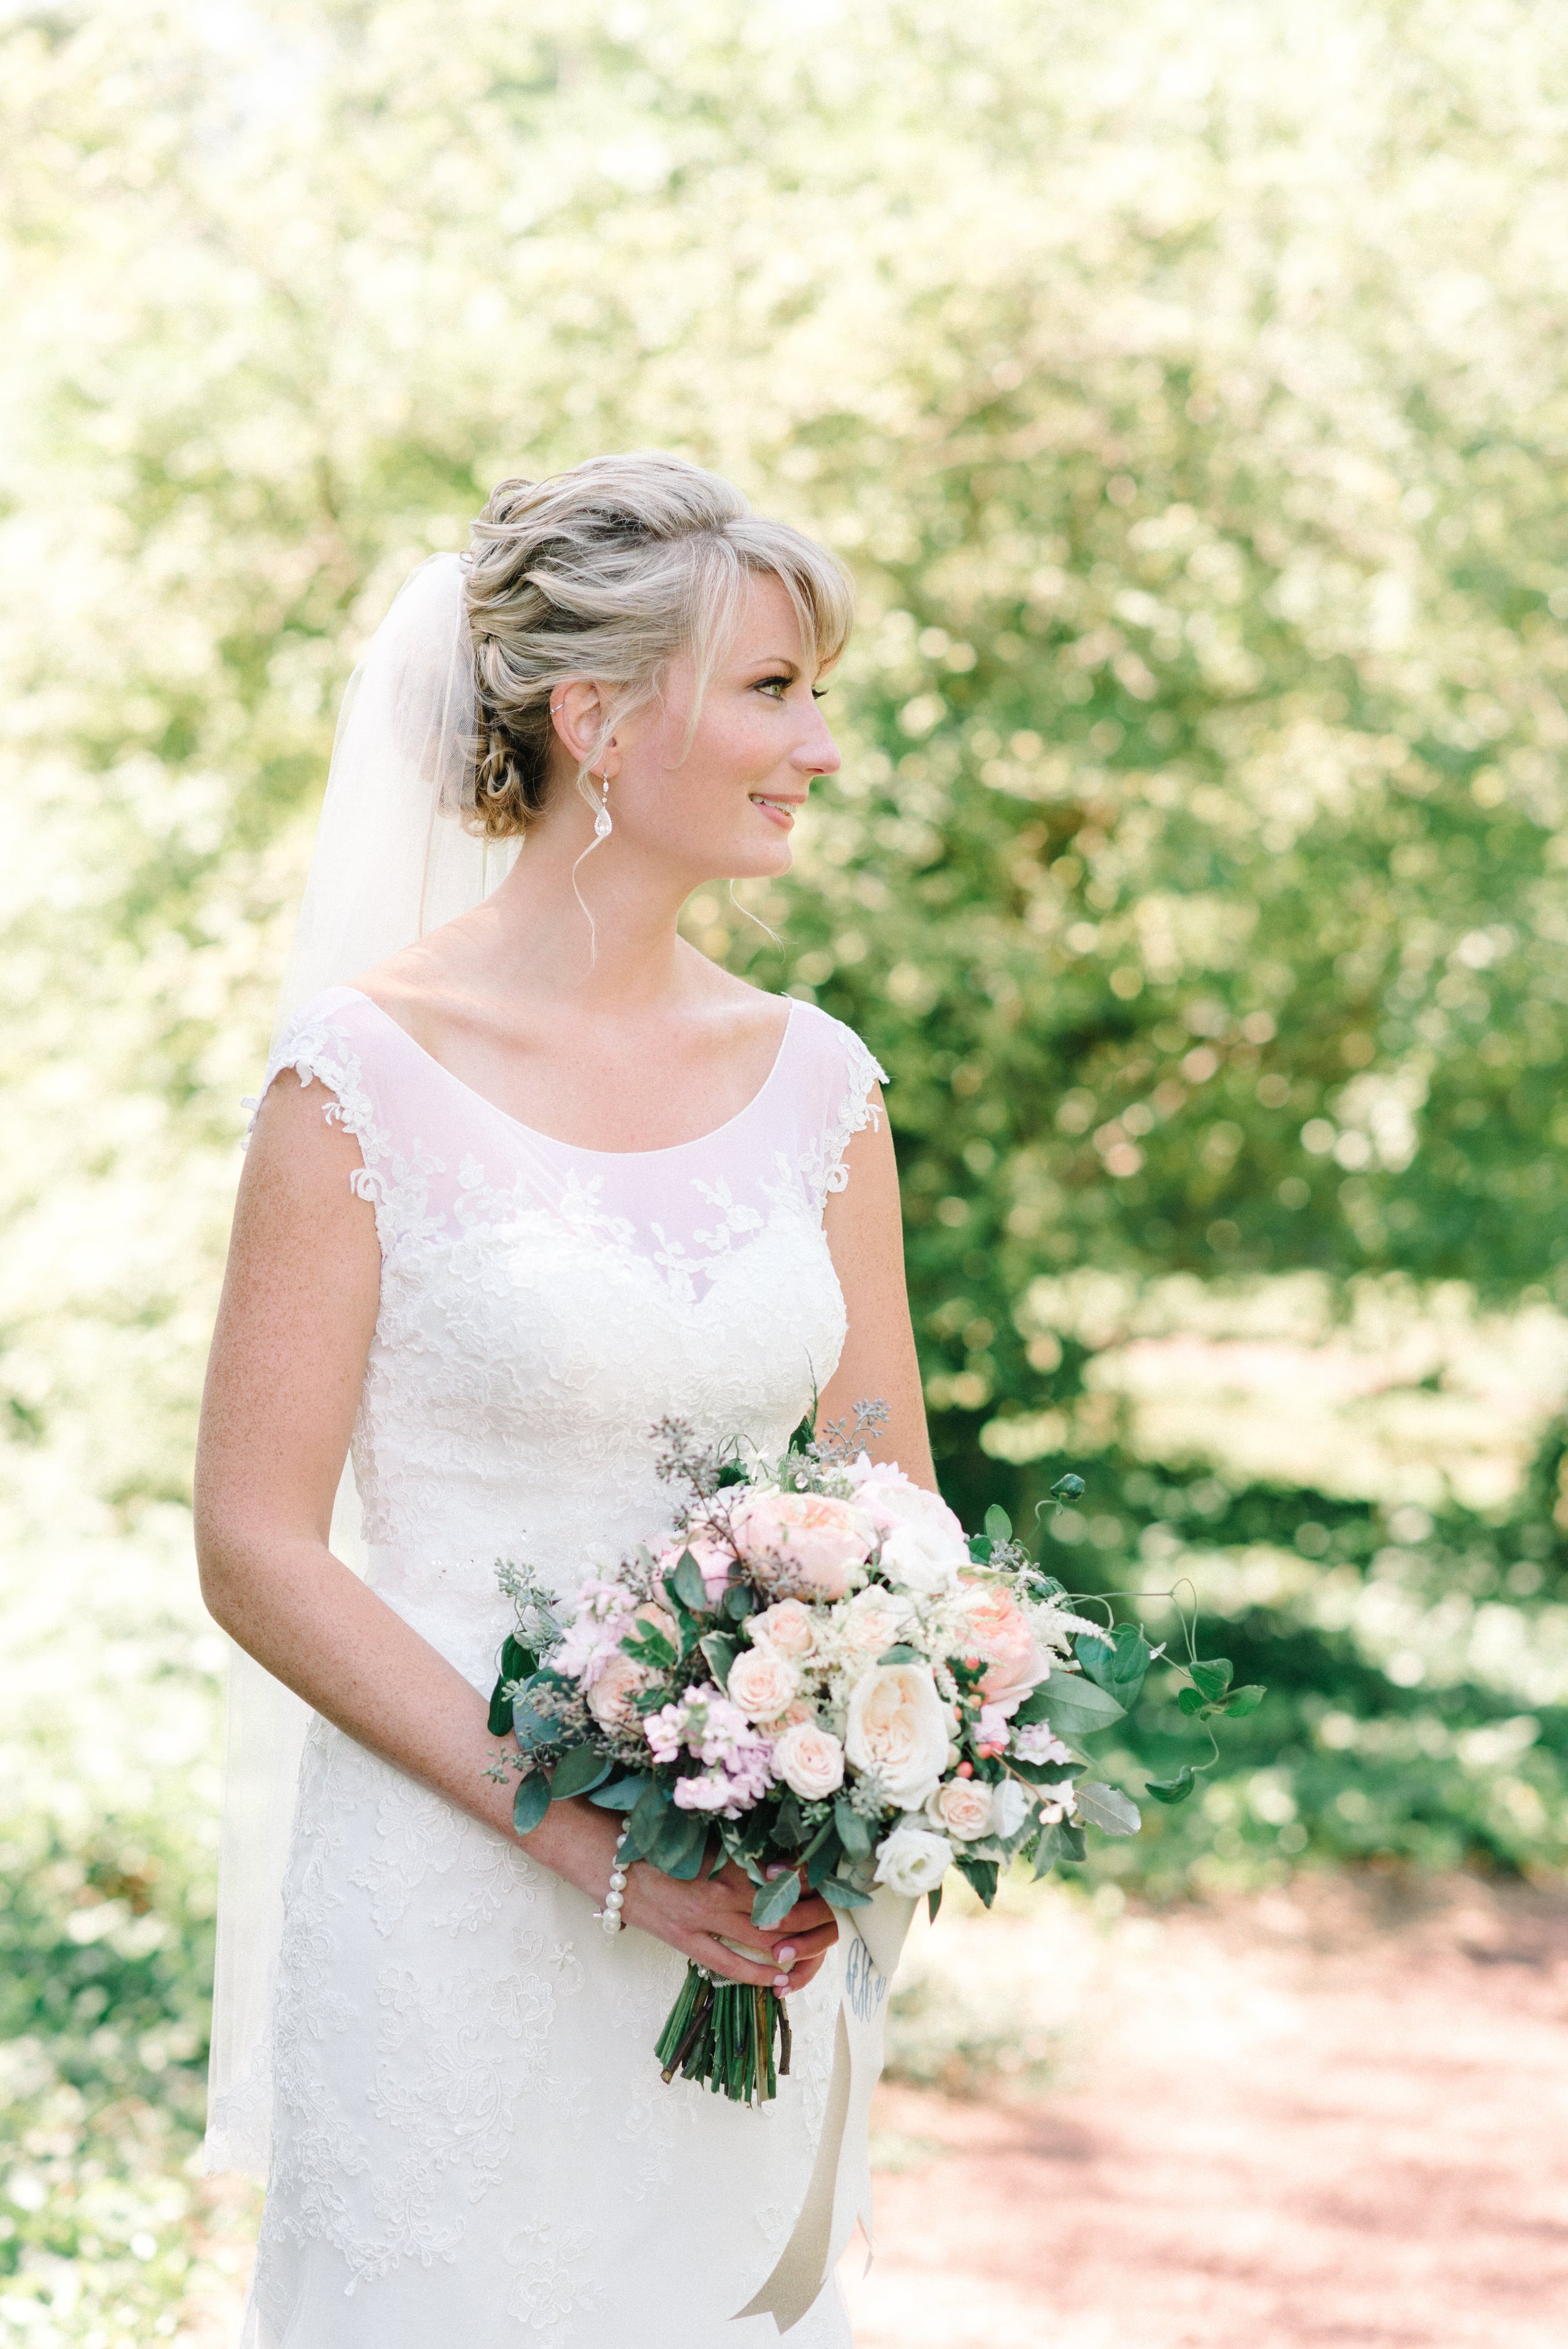 A Garden Party Florist, Inn at Fernbrook Farms, Michelle Lange Photography, Blush